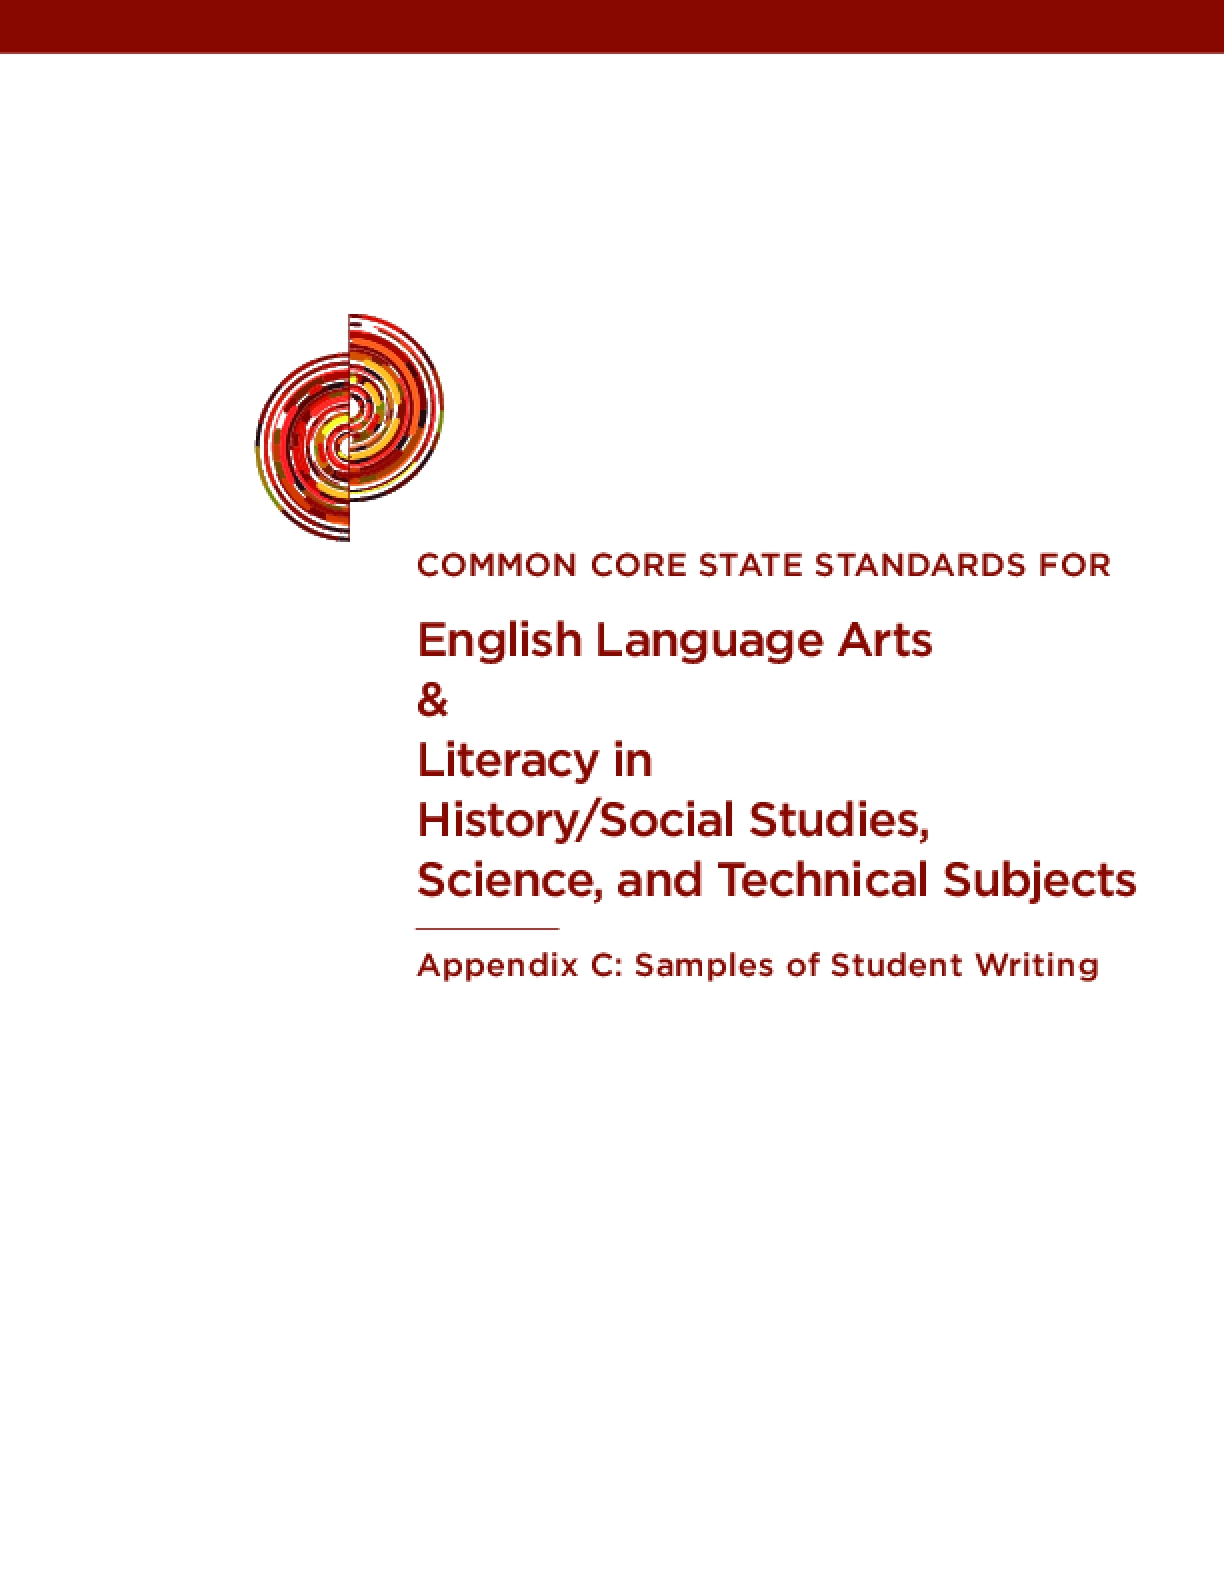 Common Core State Standards for English Langage Arts & Literacy in History/Social Studies, Science, and Technical Subjects Appendix C: Samples of Student Writing